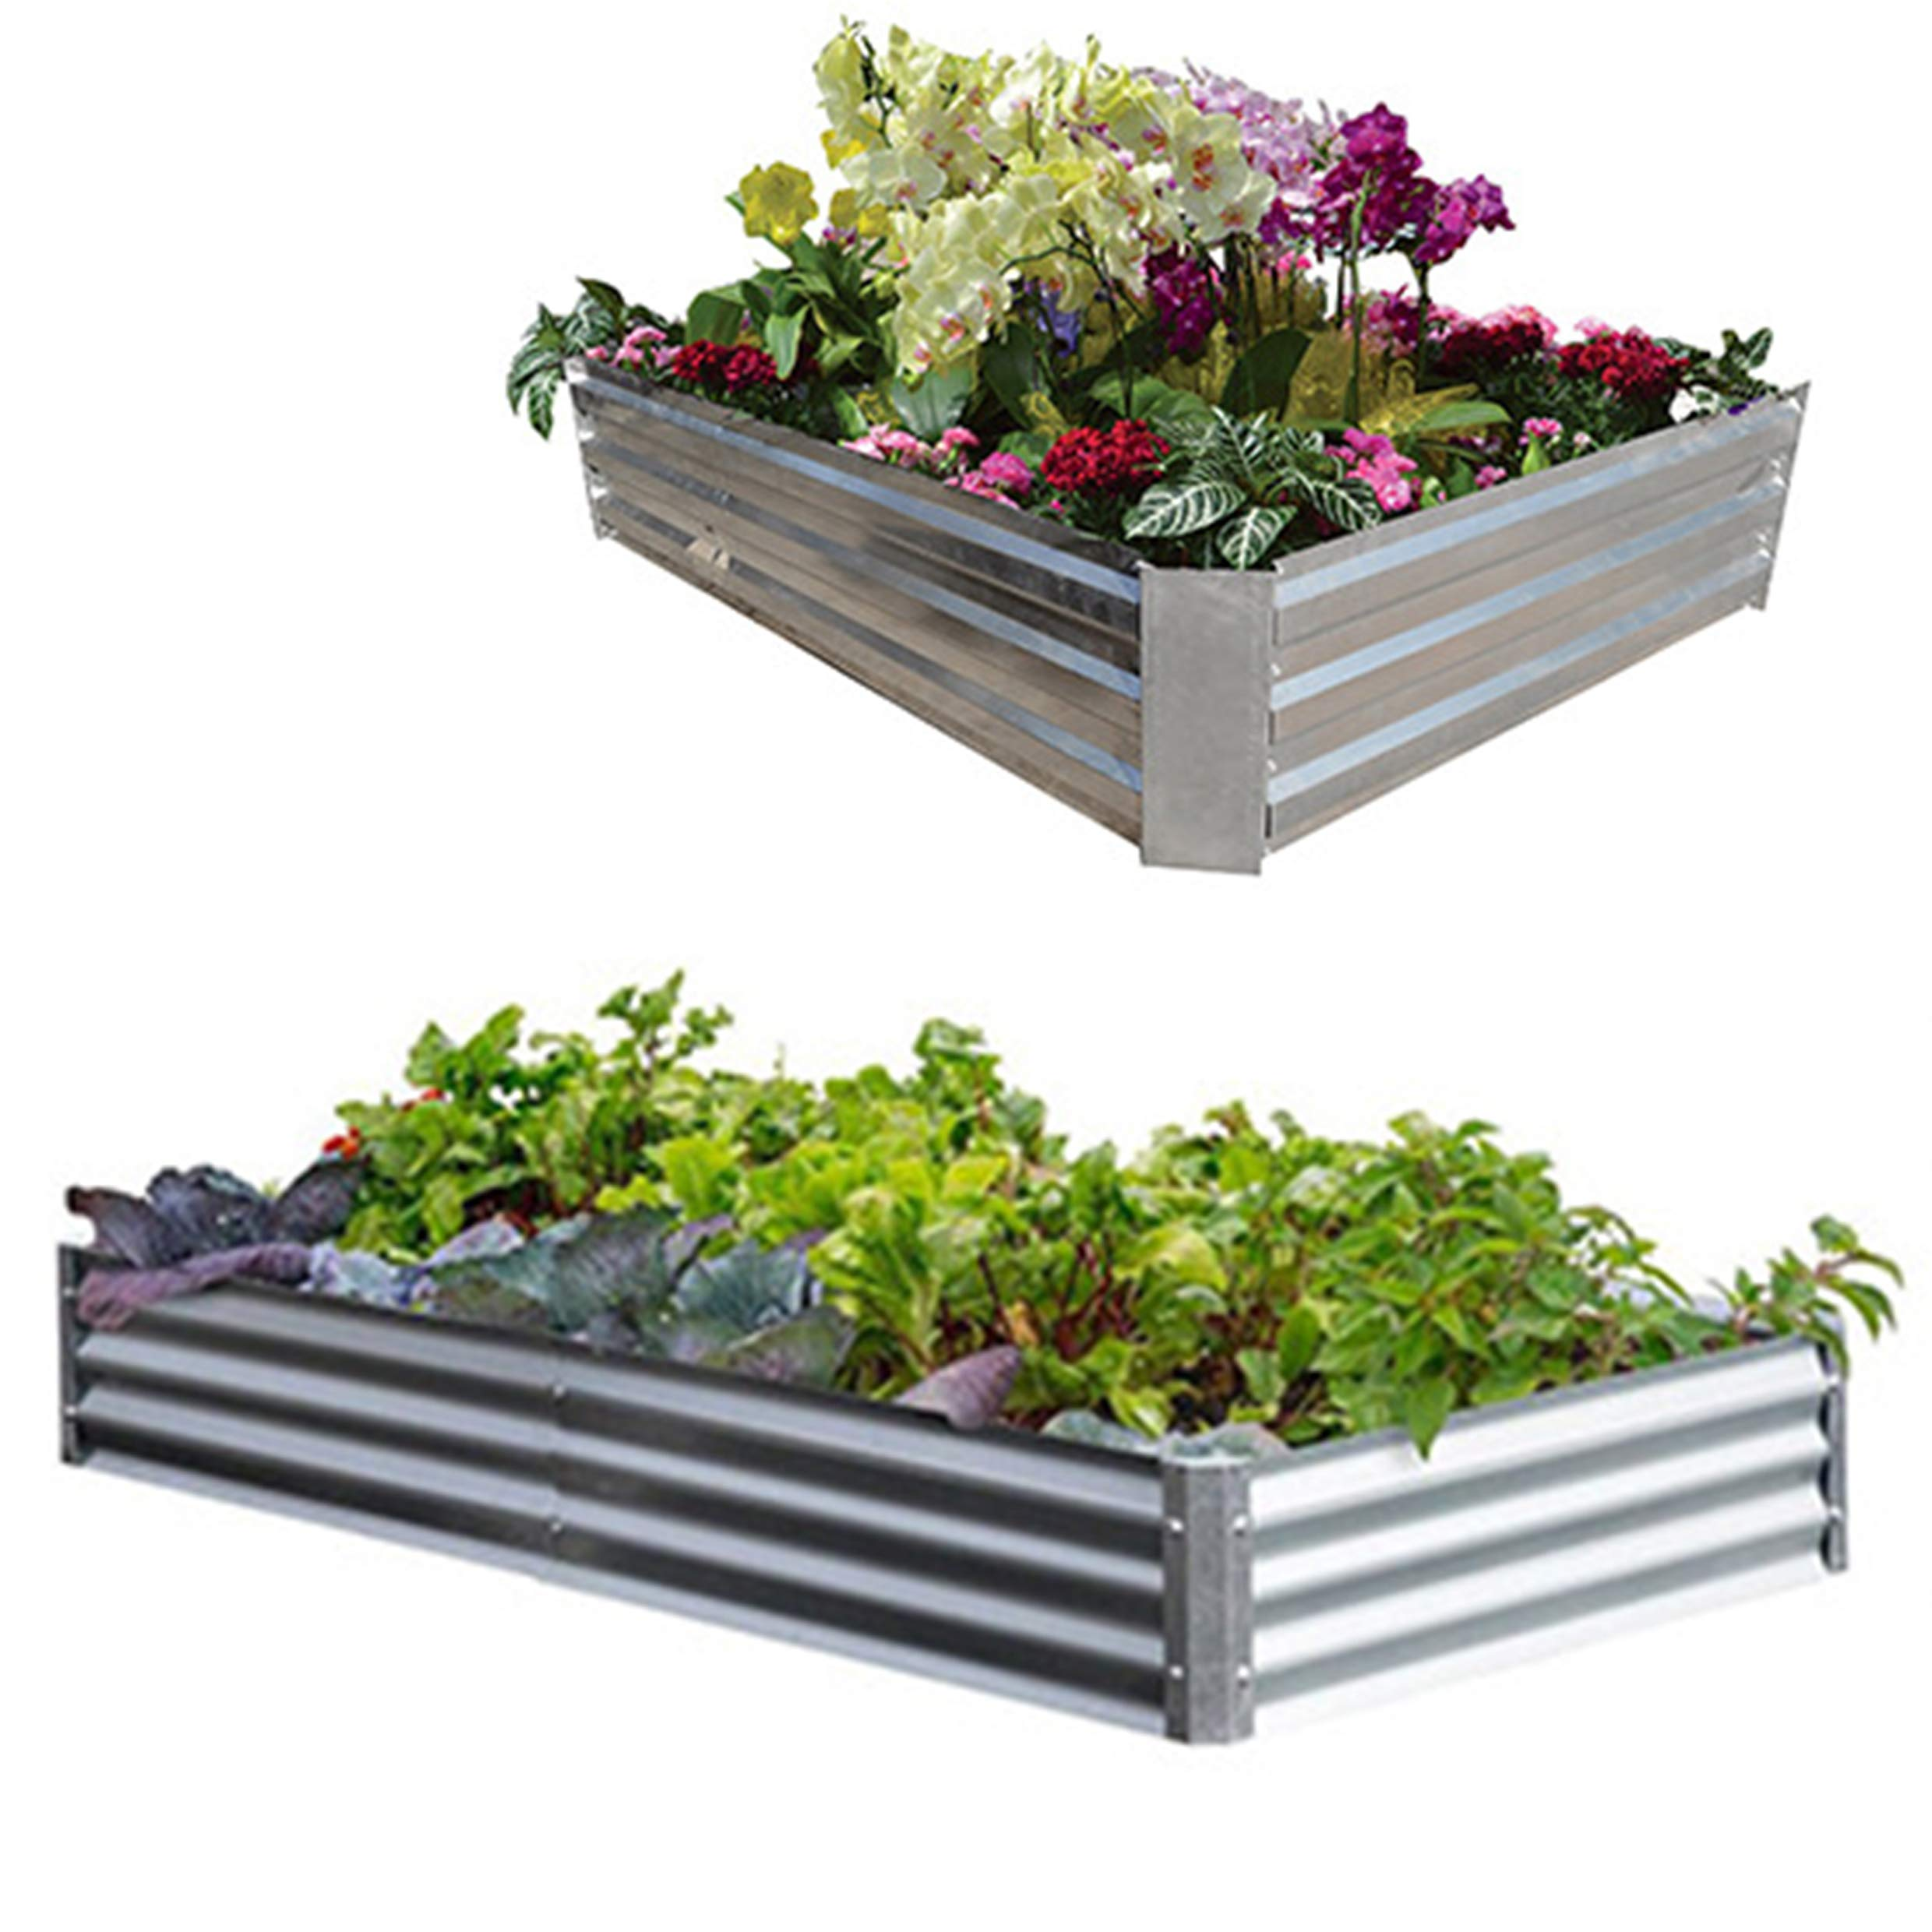 Metal Frame Raised Garden Bed Kit(Multi Sizes) - Elevated Planter Box for Growing Herbs, Vegetables, Greens, Strawberries, Flowers; Above Ground Galvanized Flower Bed kit 4 x 4 ft or 6 x 2 ft by DECO2PRO LLC